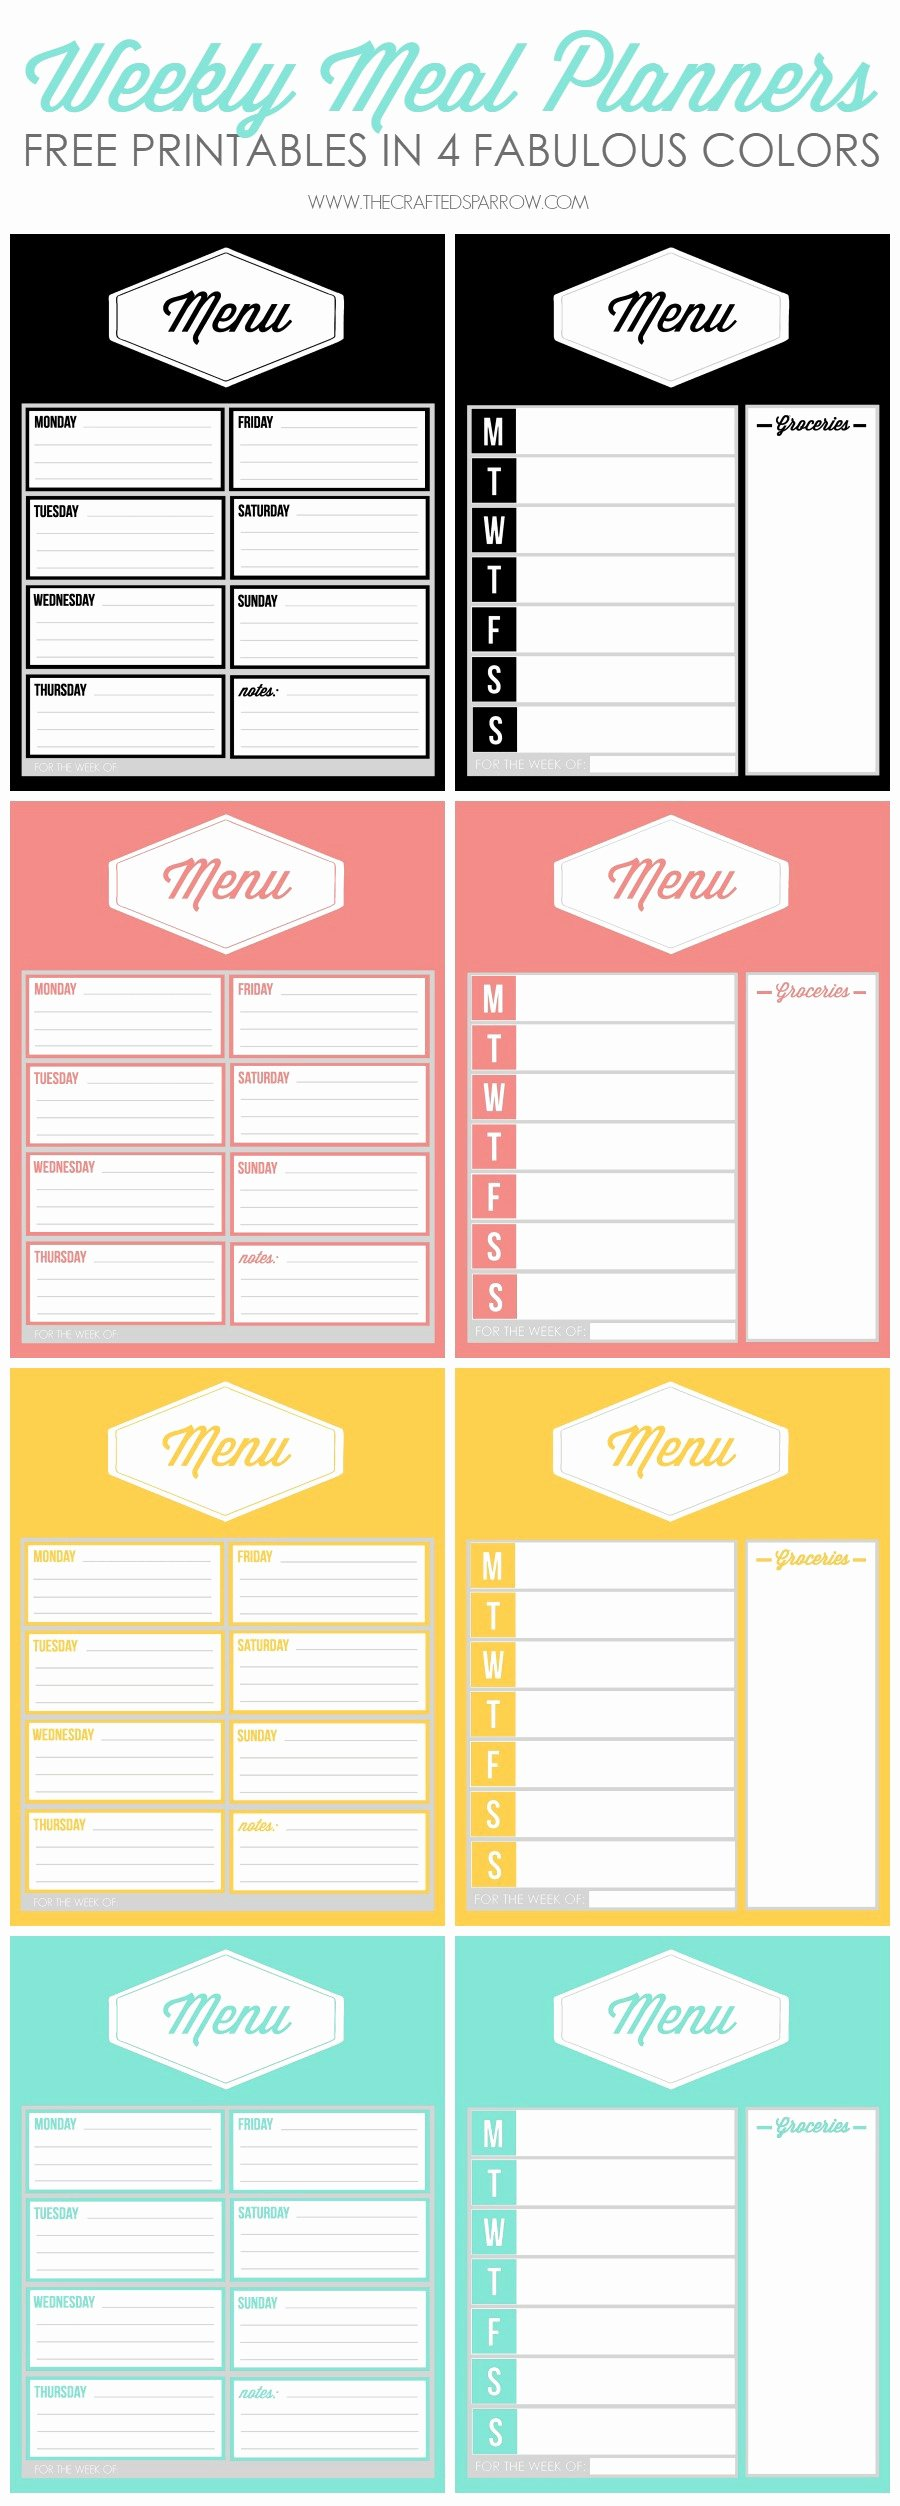 Weekly Meal Planner Template Printable Elegant Free Printable Weekly Meal Planners